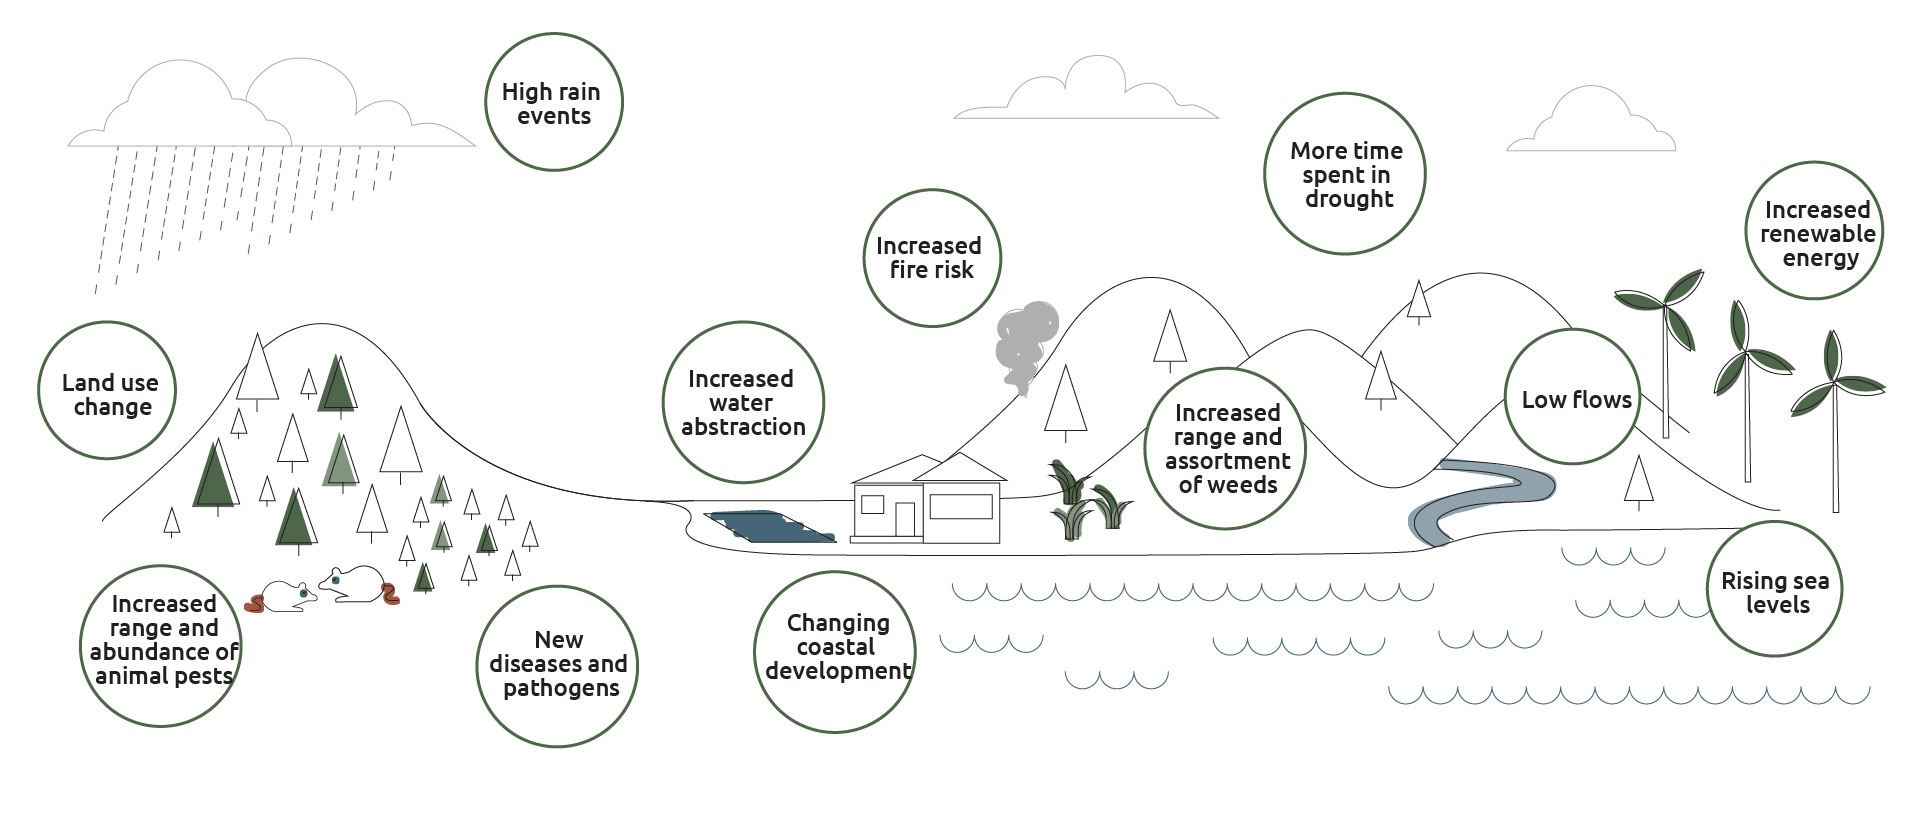 Infographic of the impacts of climate change on a landscape, the issues are in bubbles over the landscape. The issues from left to right include land use change, increased range and abundance of animal pests.